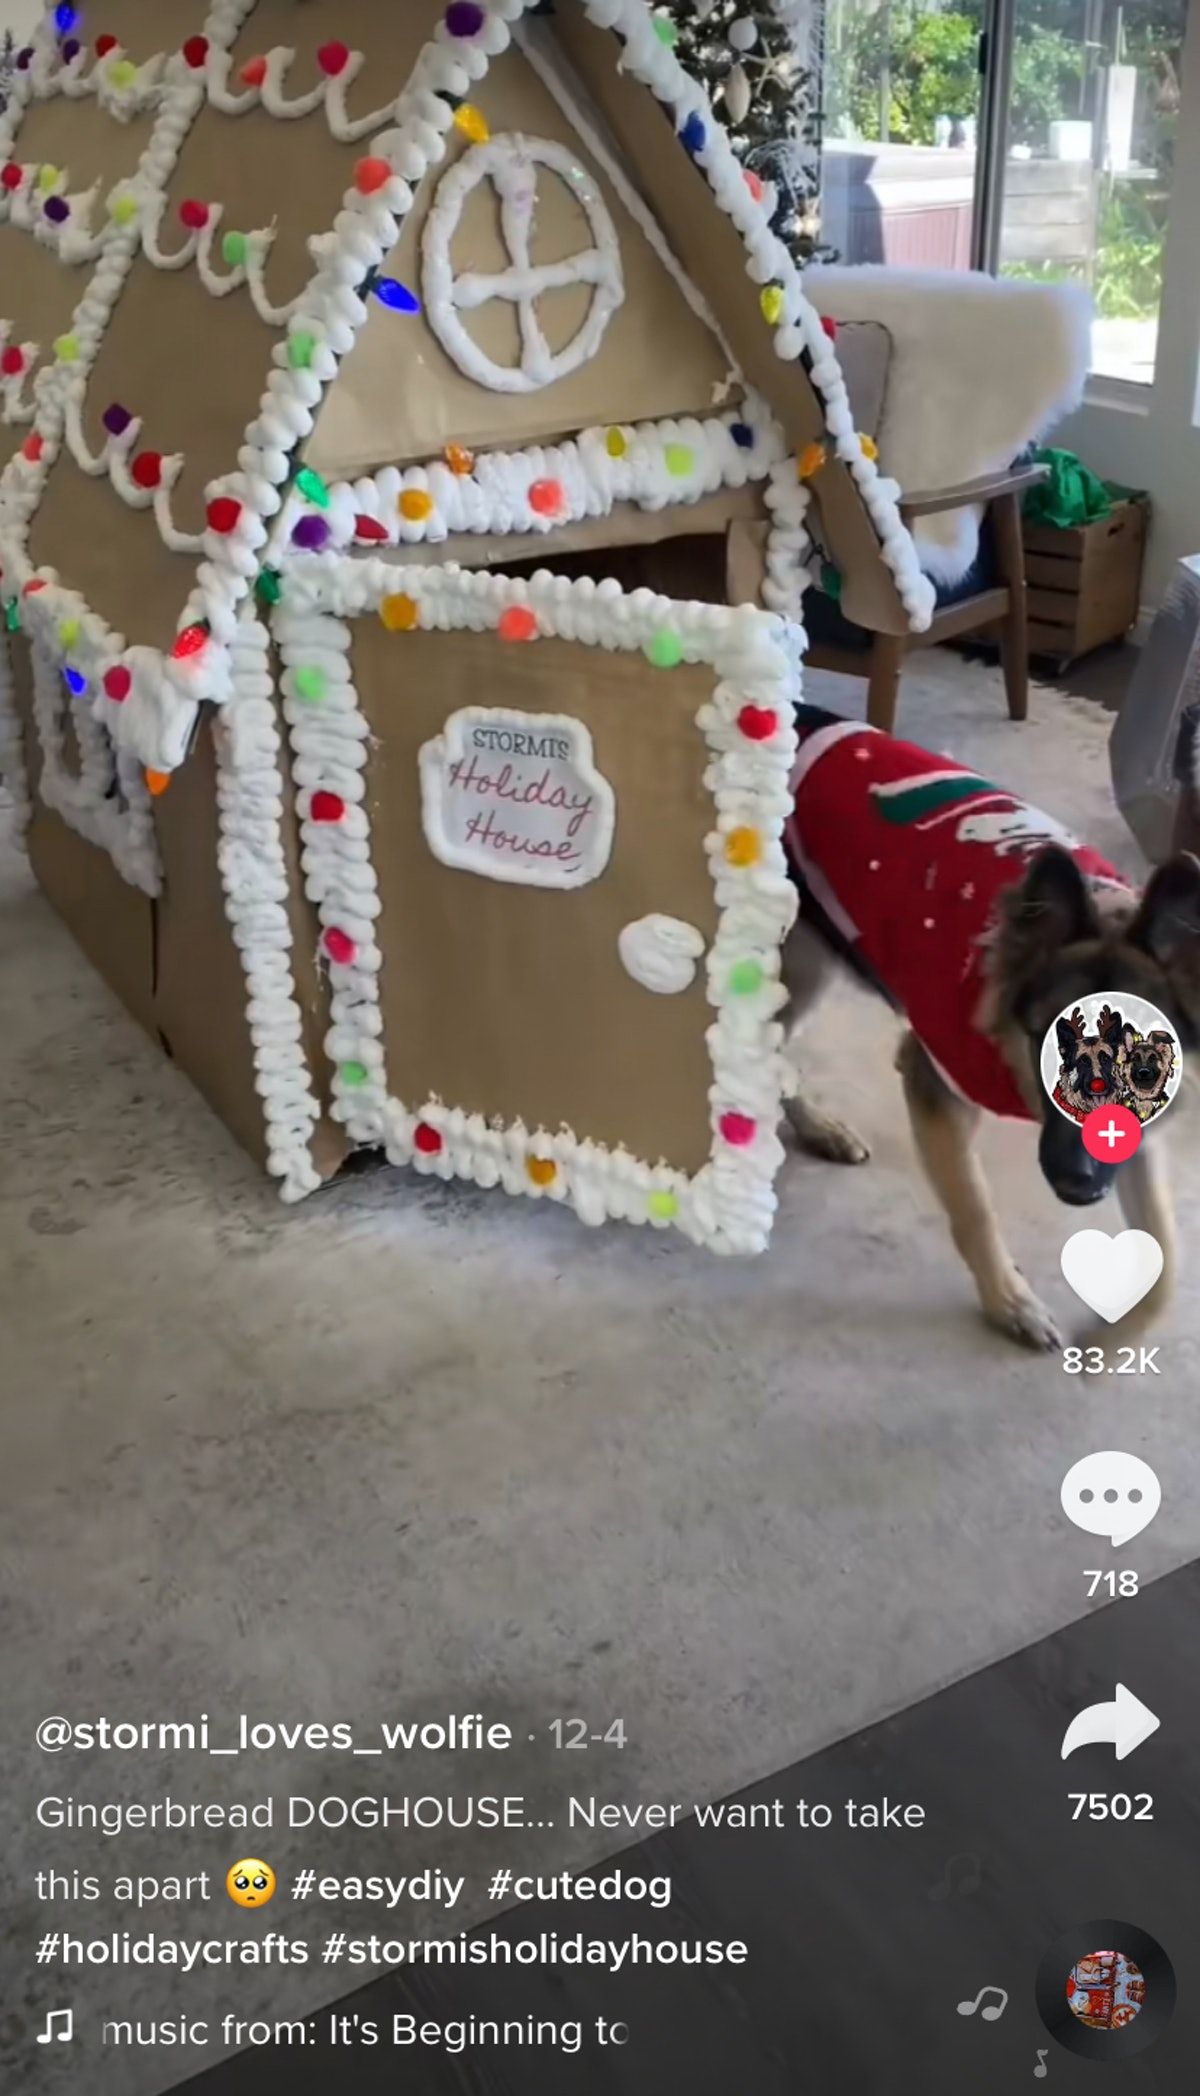 A dog runs out of his gingerbread dog house.